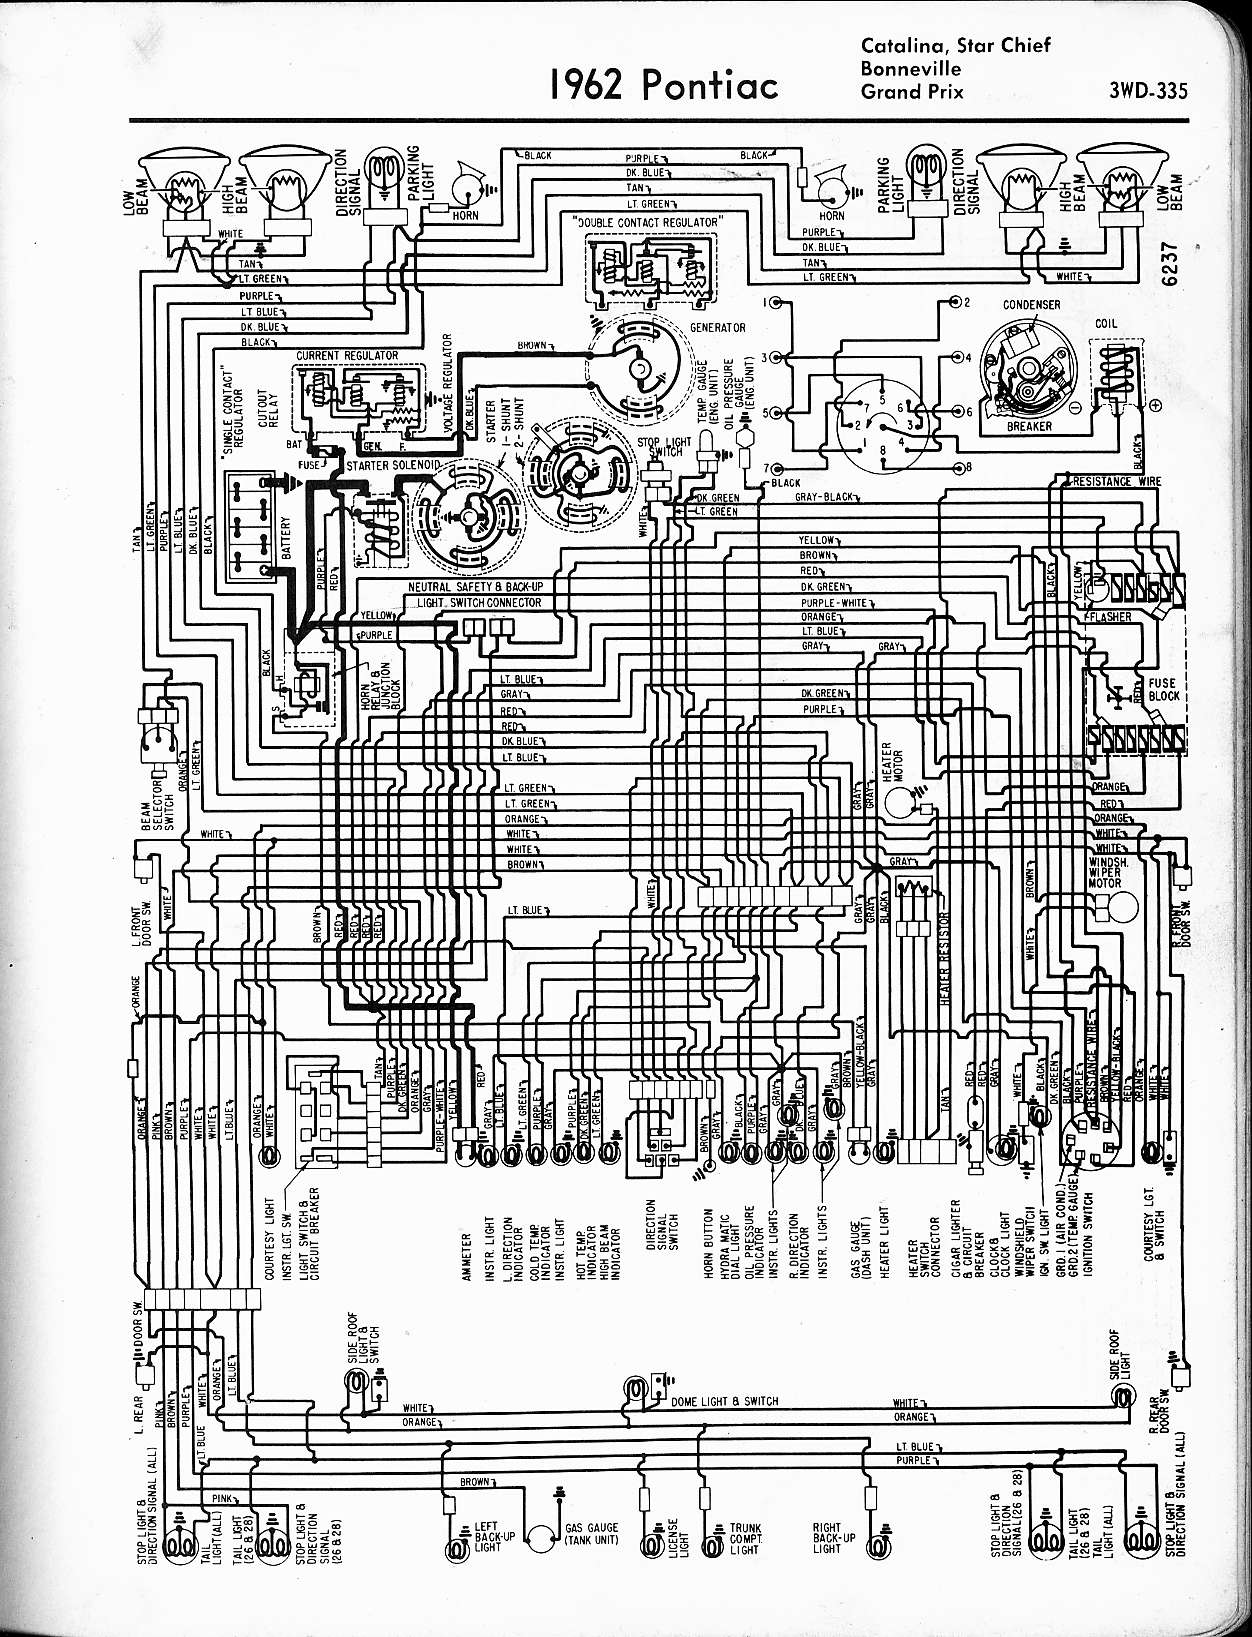 wallace racing wiring diagrams rh wallaceracing com pontiac bonneville wiring diagram 1970 triumph bonneville wiring diagram